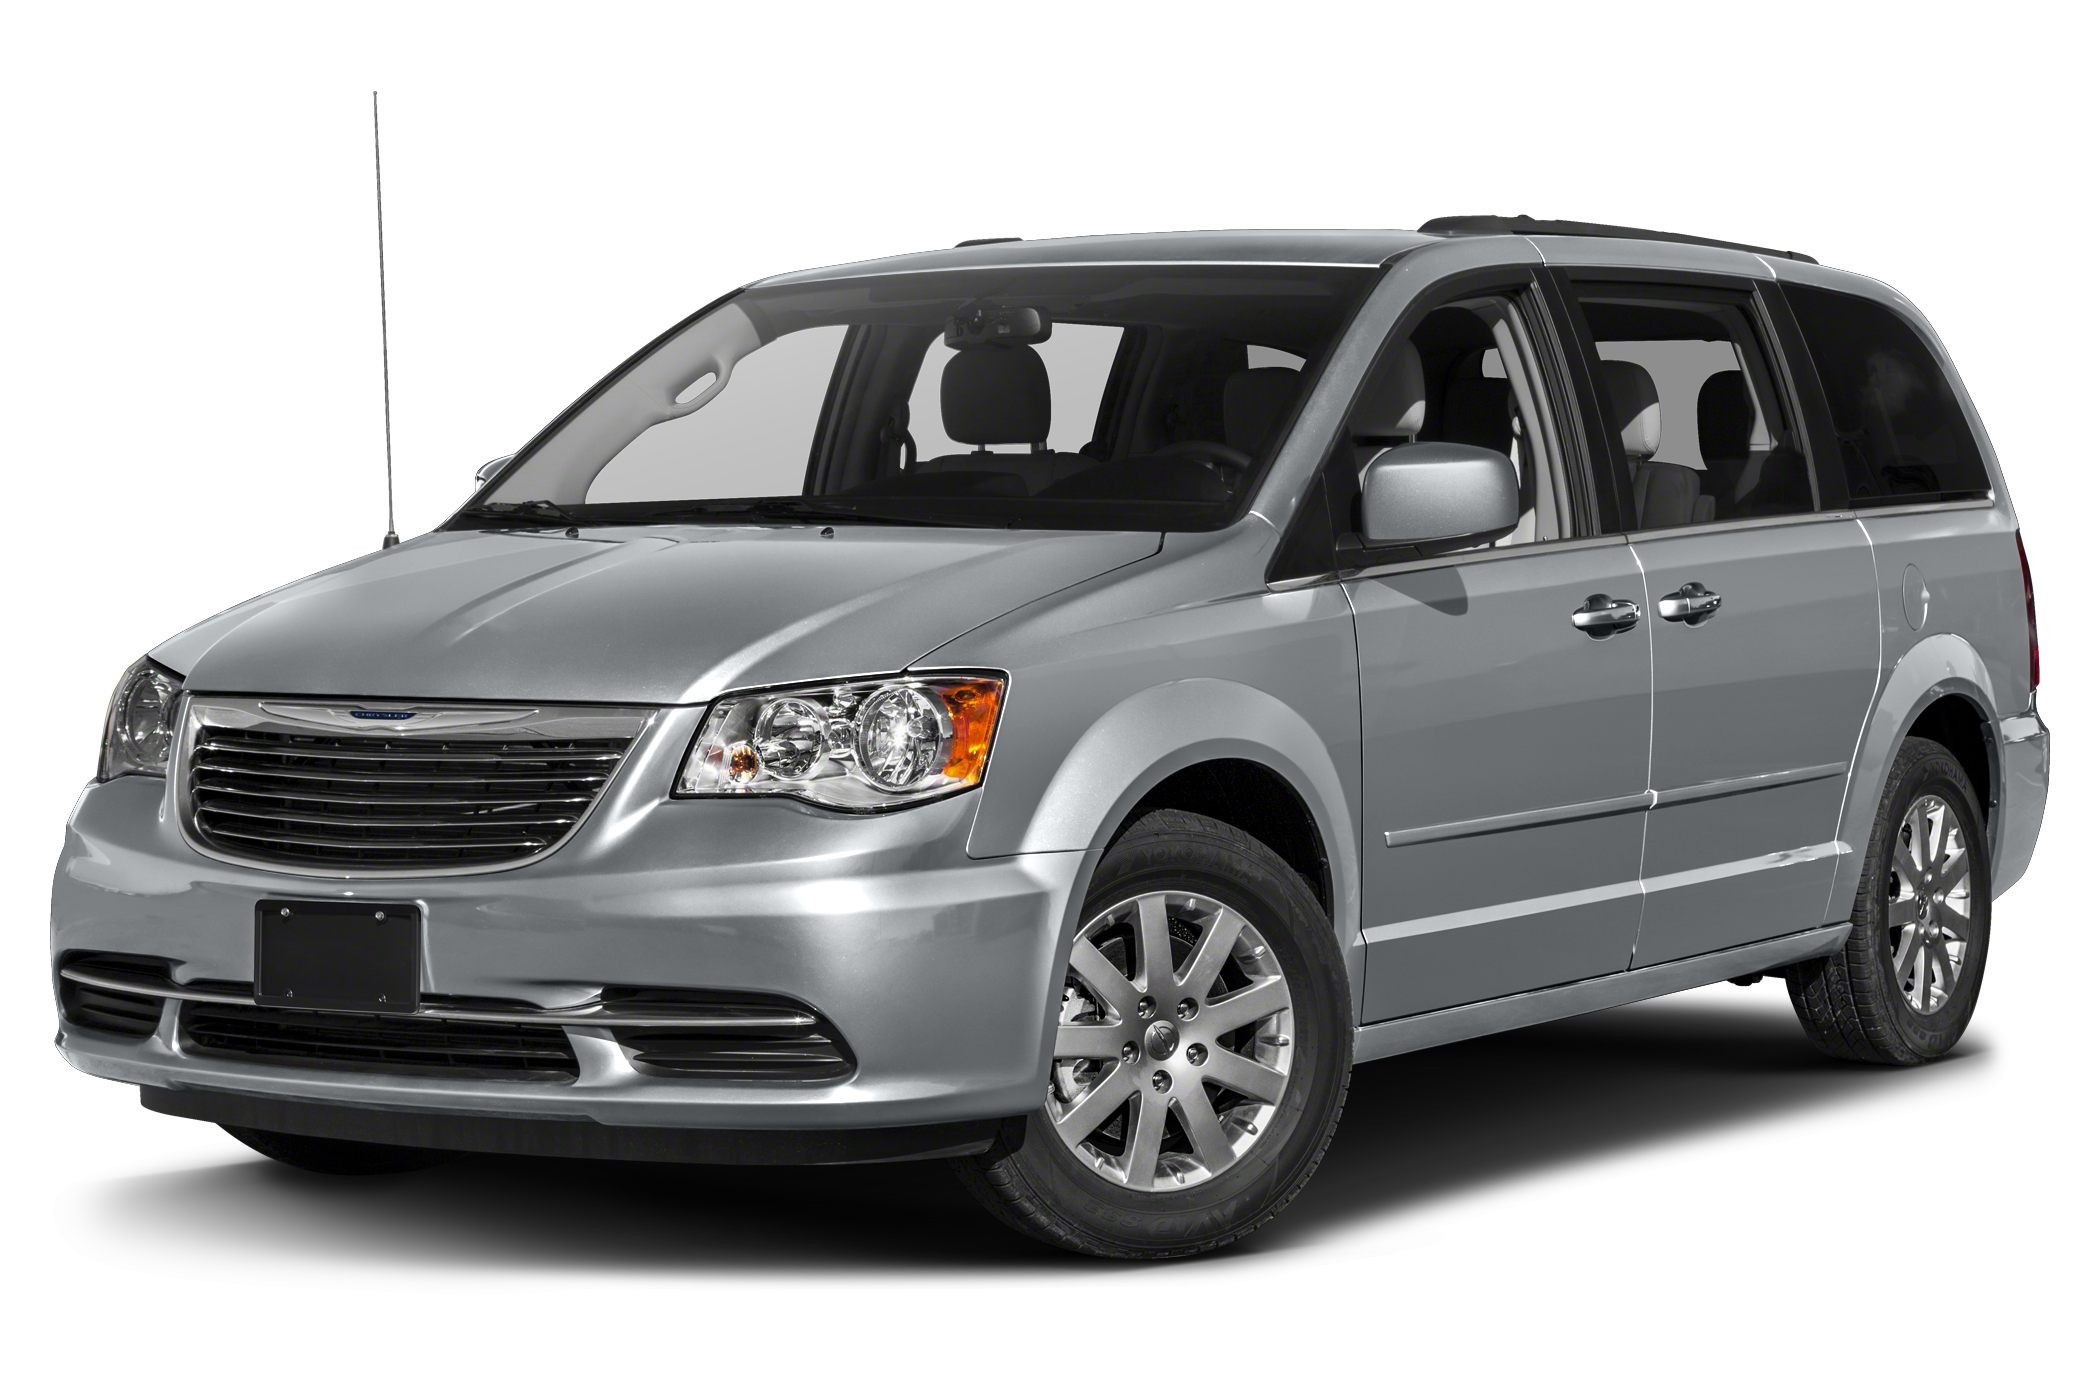 91 The Best 2019 Chrysler Town Country Awd Wallpaper